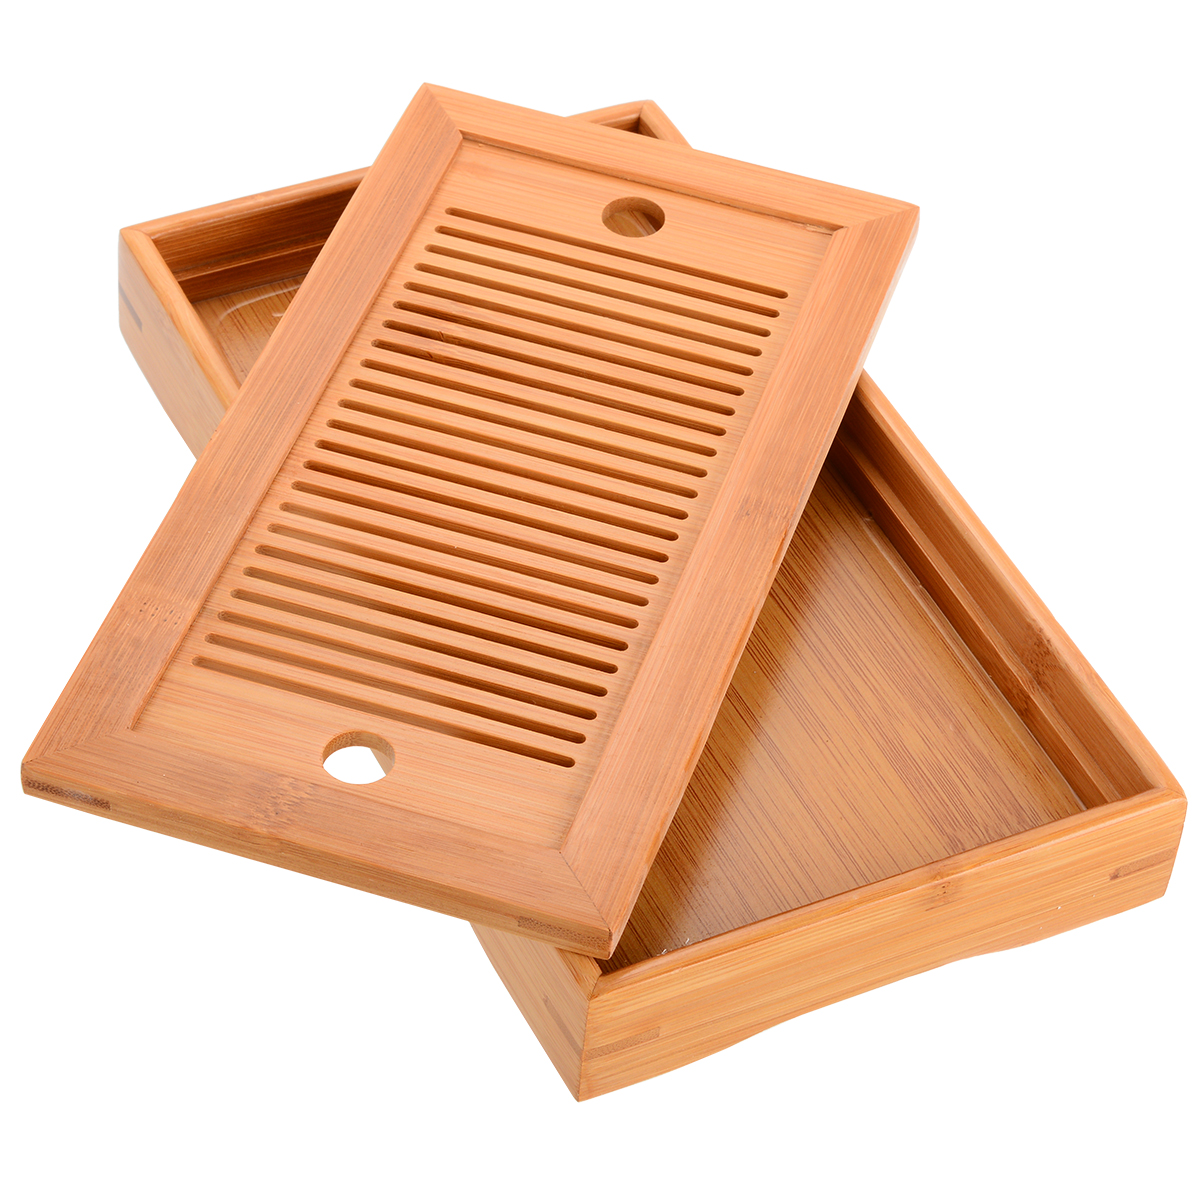 25 14 3 5cm Rectangle Chinese Gongfu Tea High Quality Bamboo Tea Tray Serving Food Coffee Tea Cutlery Tray in Tea Trays from Home Garden